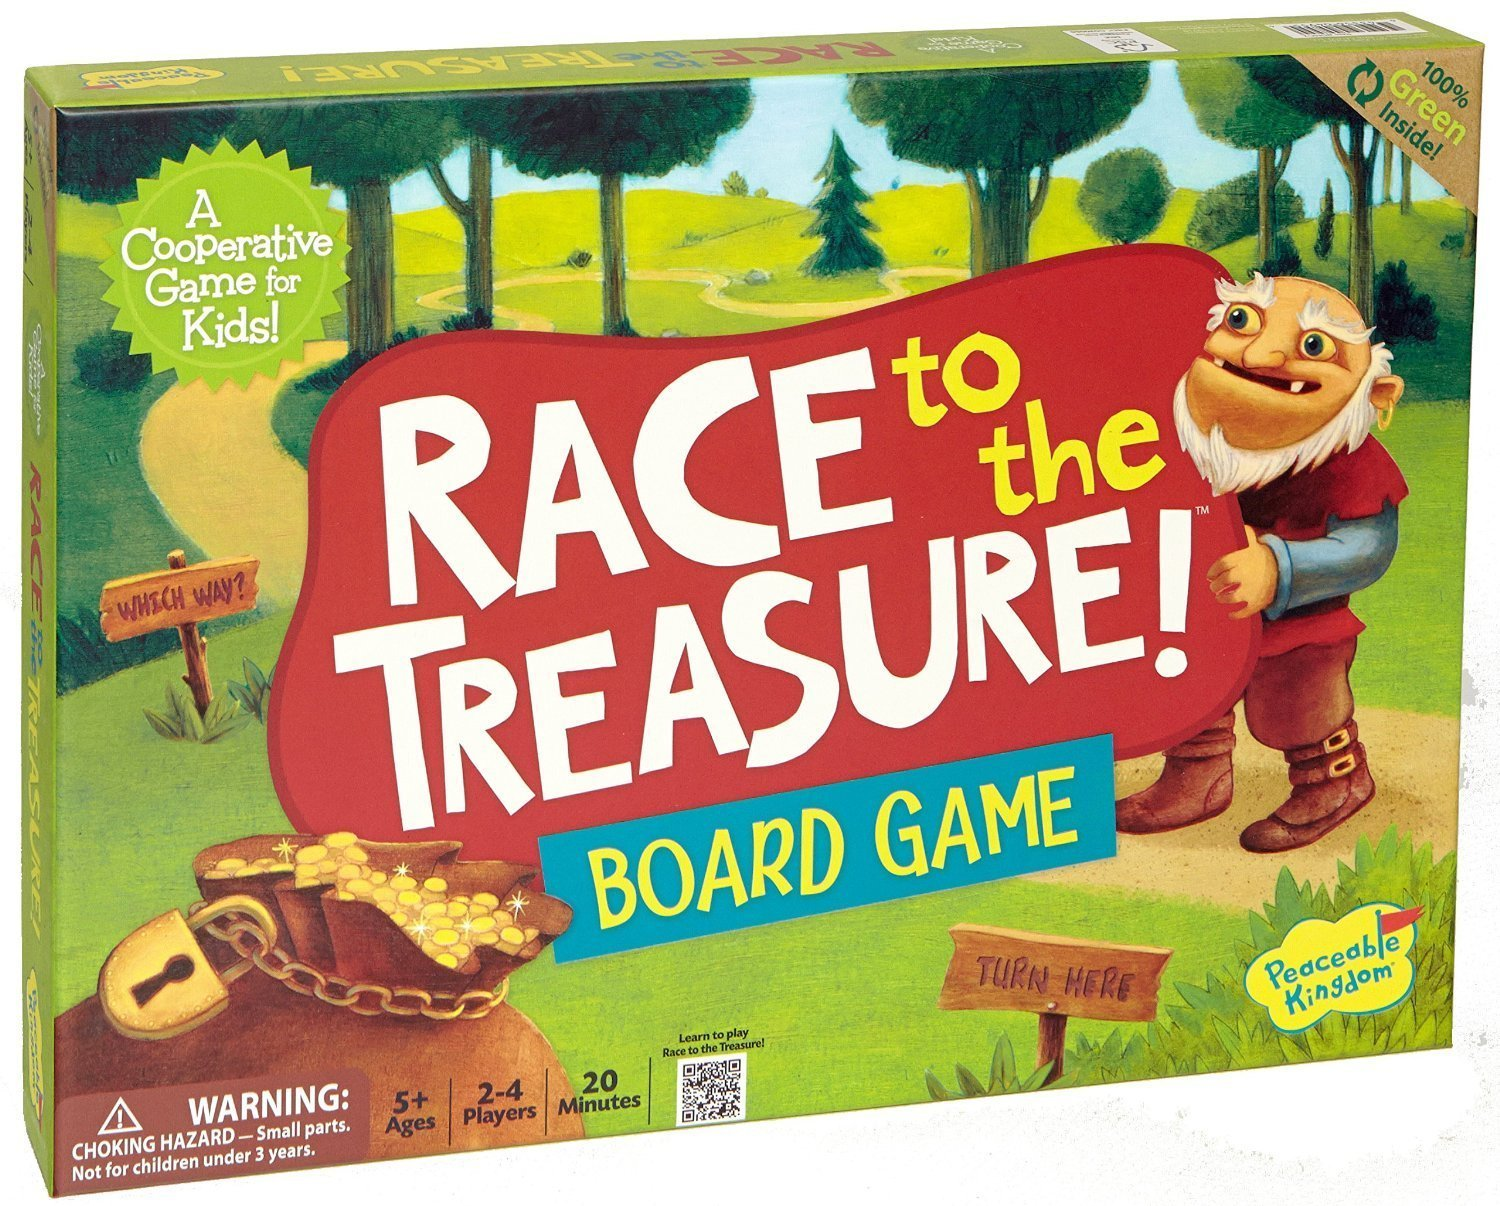 image of the board game called Race to the Treasure